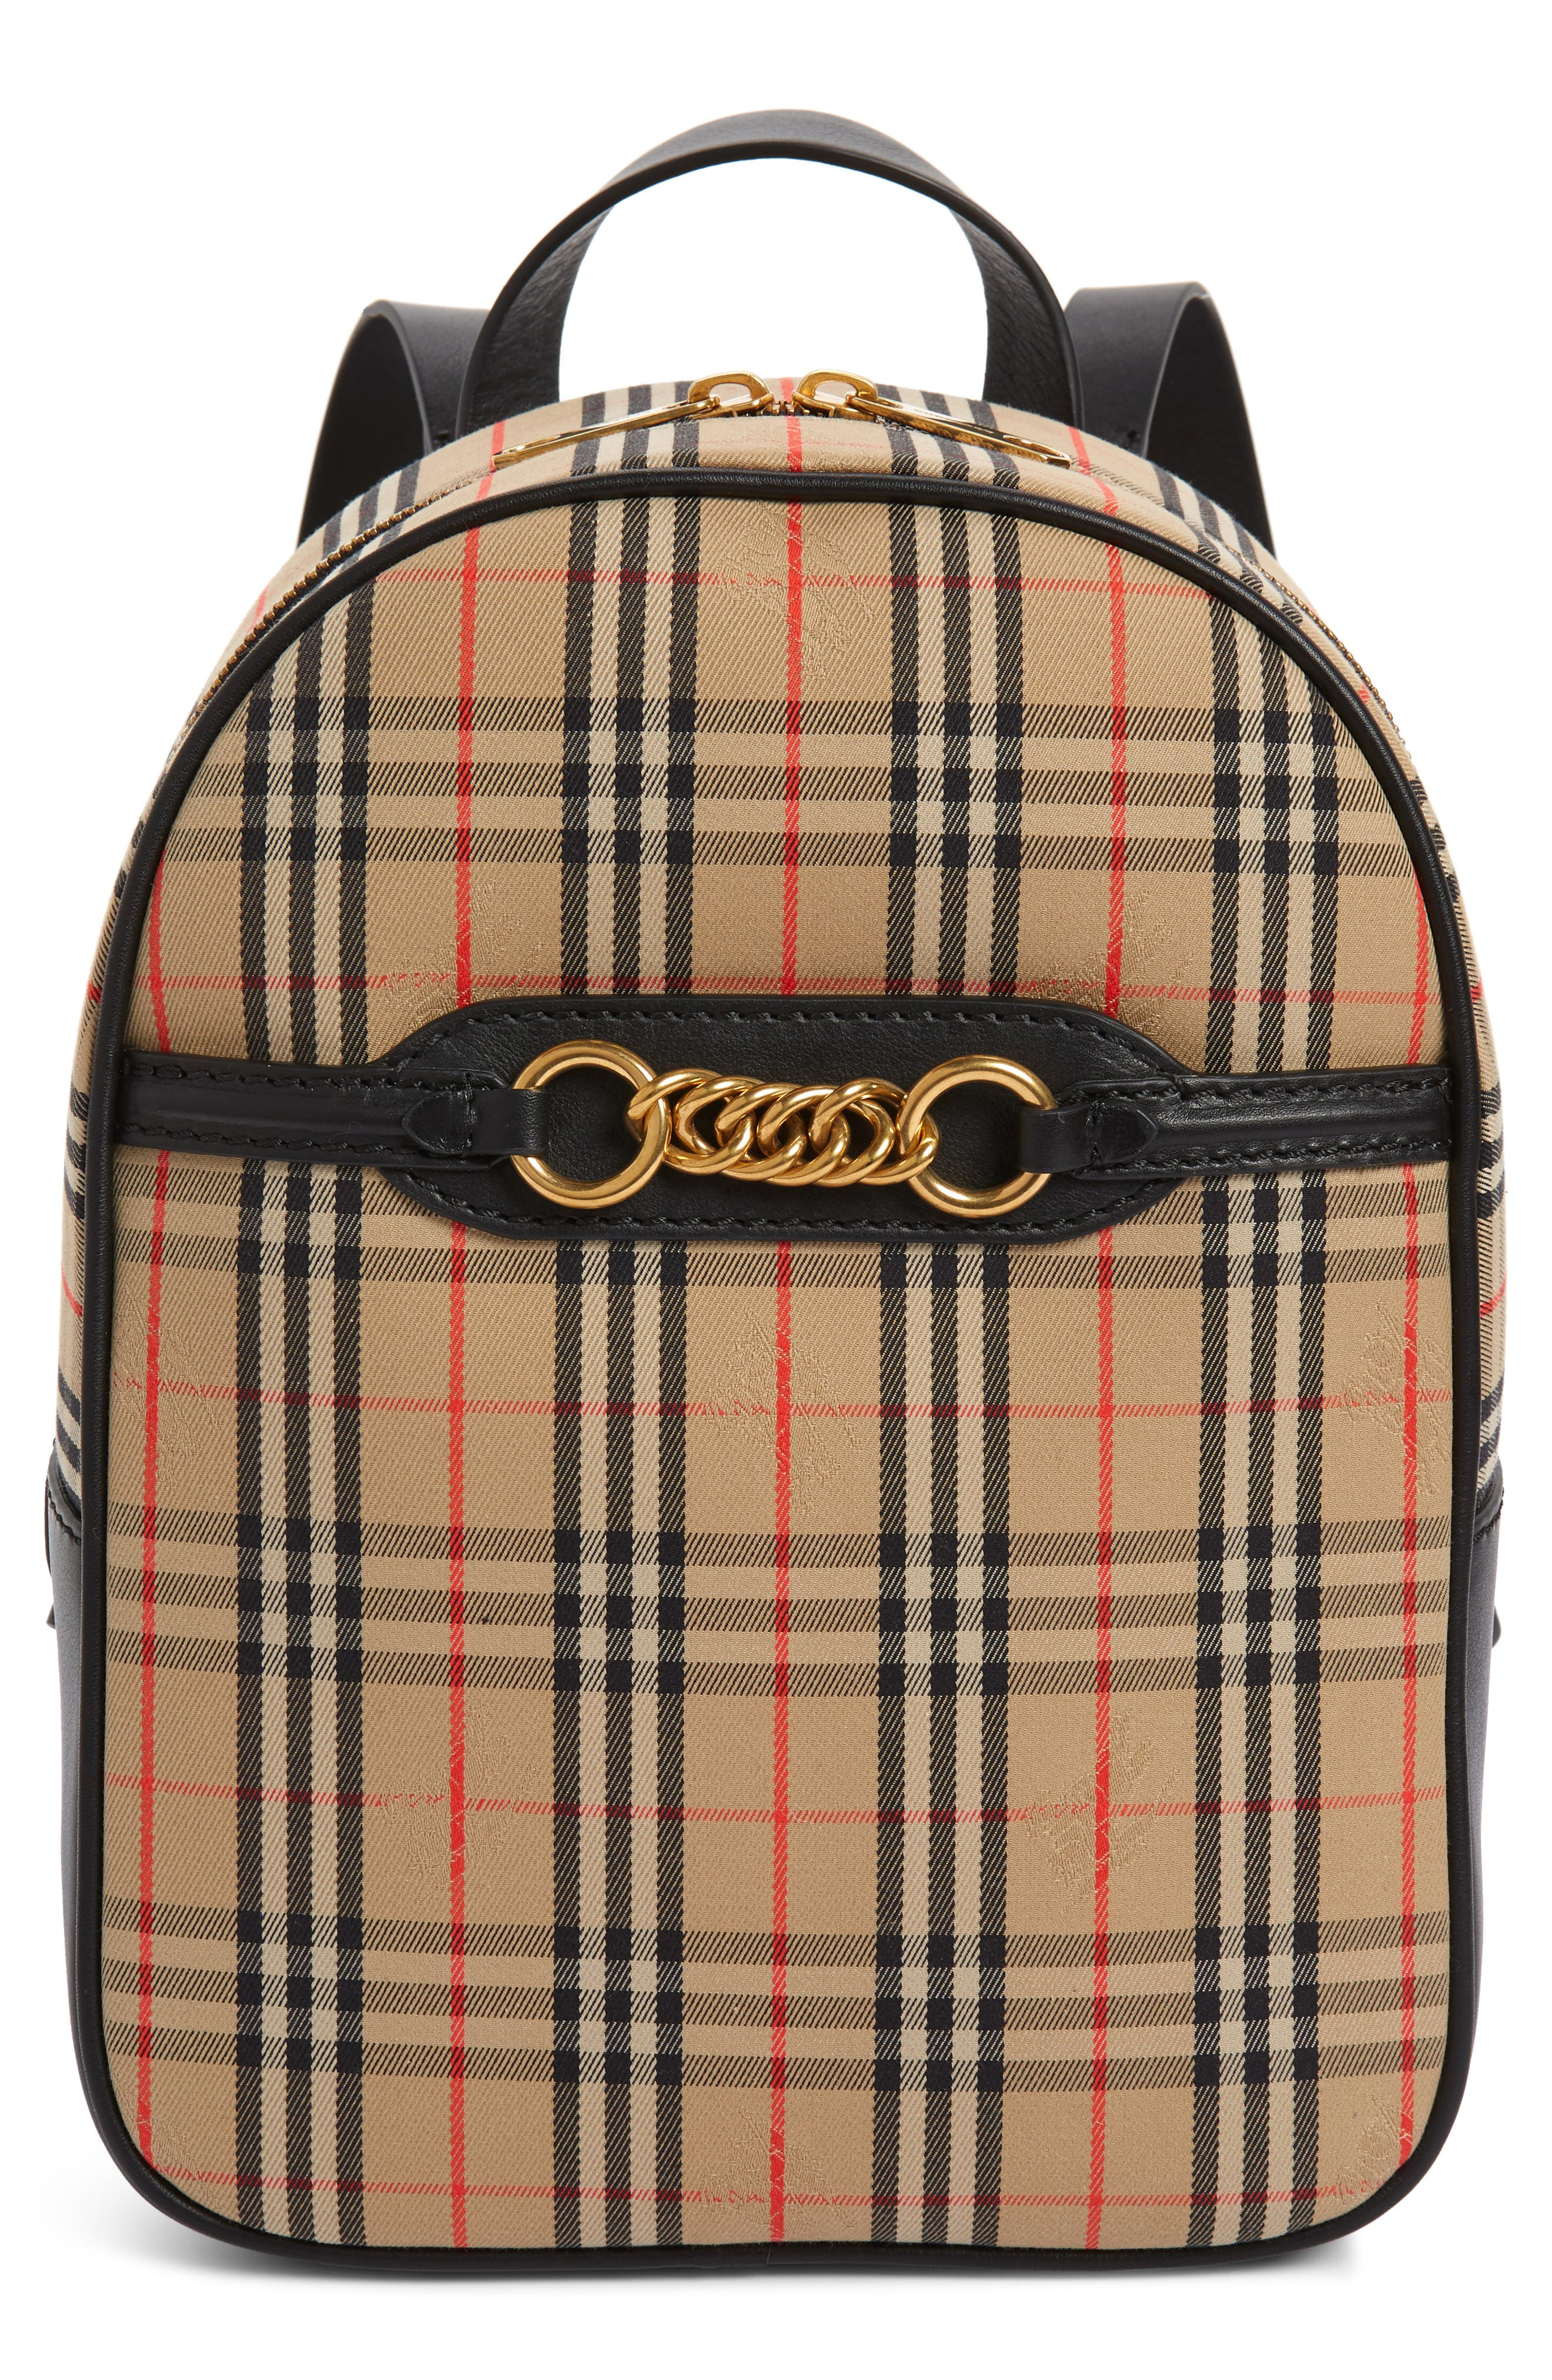 Link Vintage Check Canvas Backpack,                             Main thumbnail 1, color,                             ANTIQUE YELLOW/ BLACK